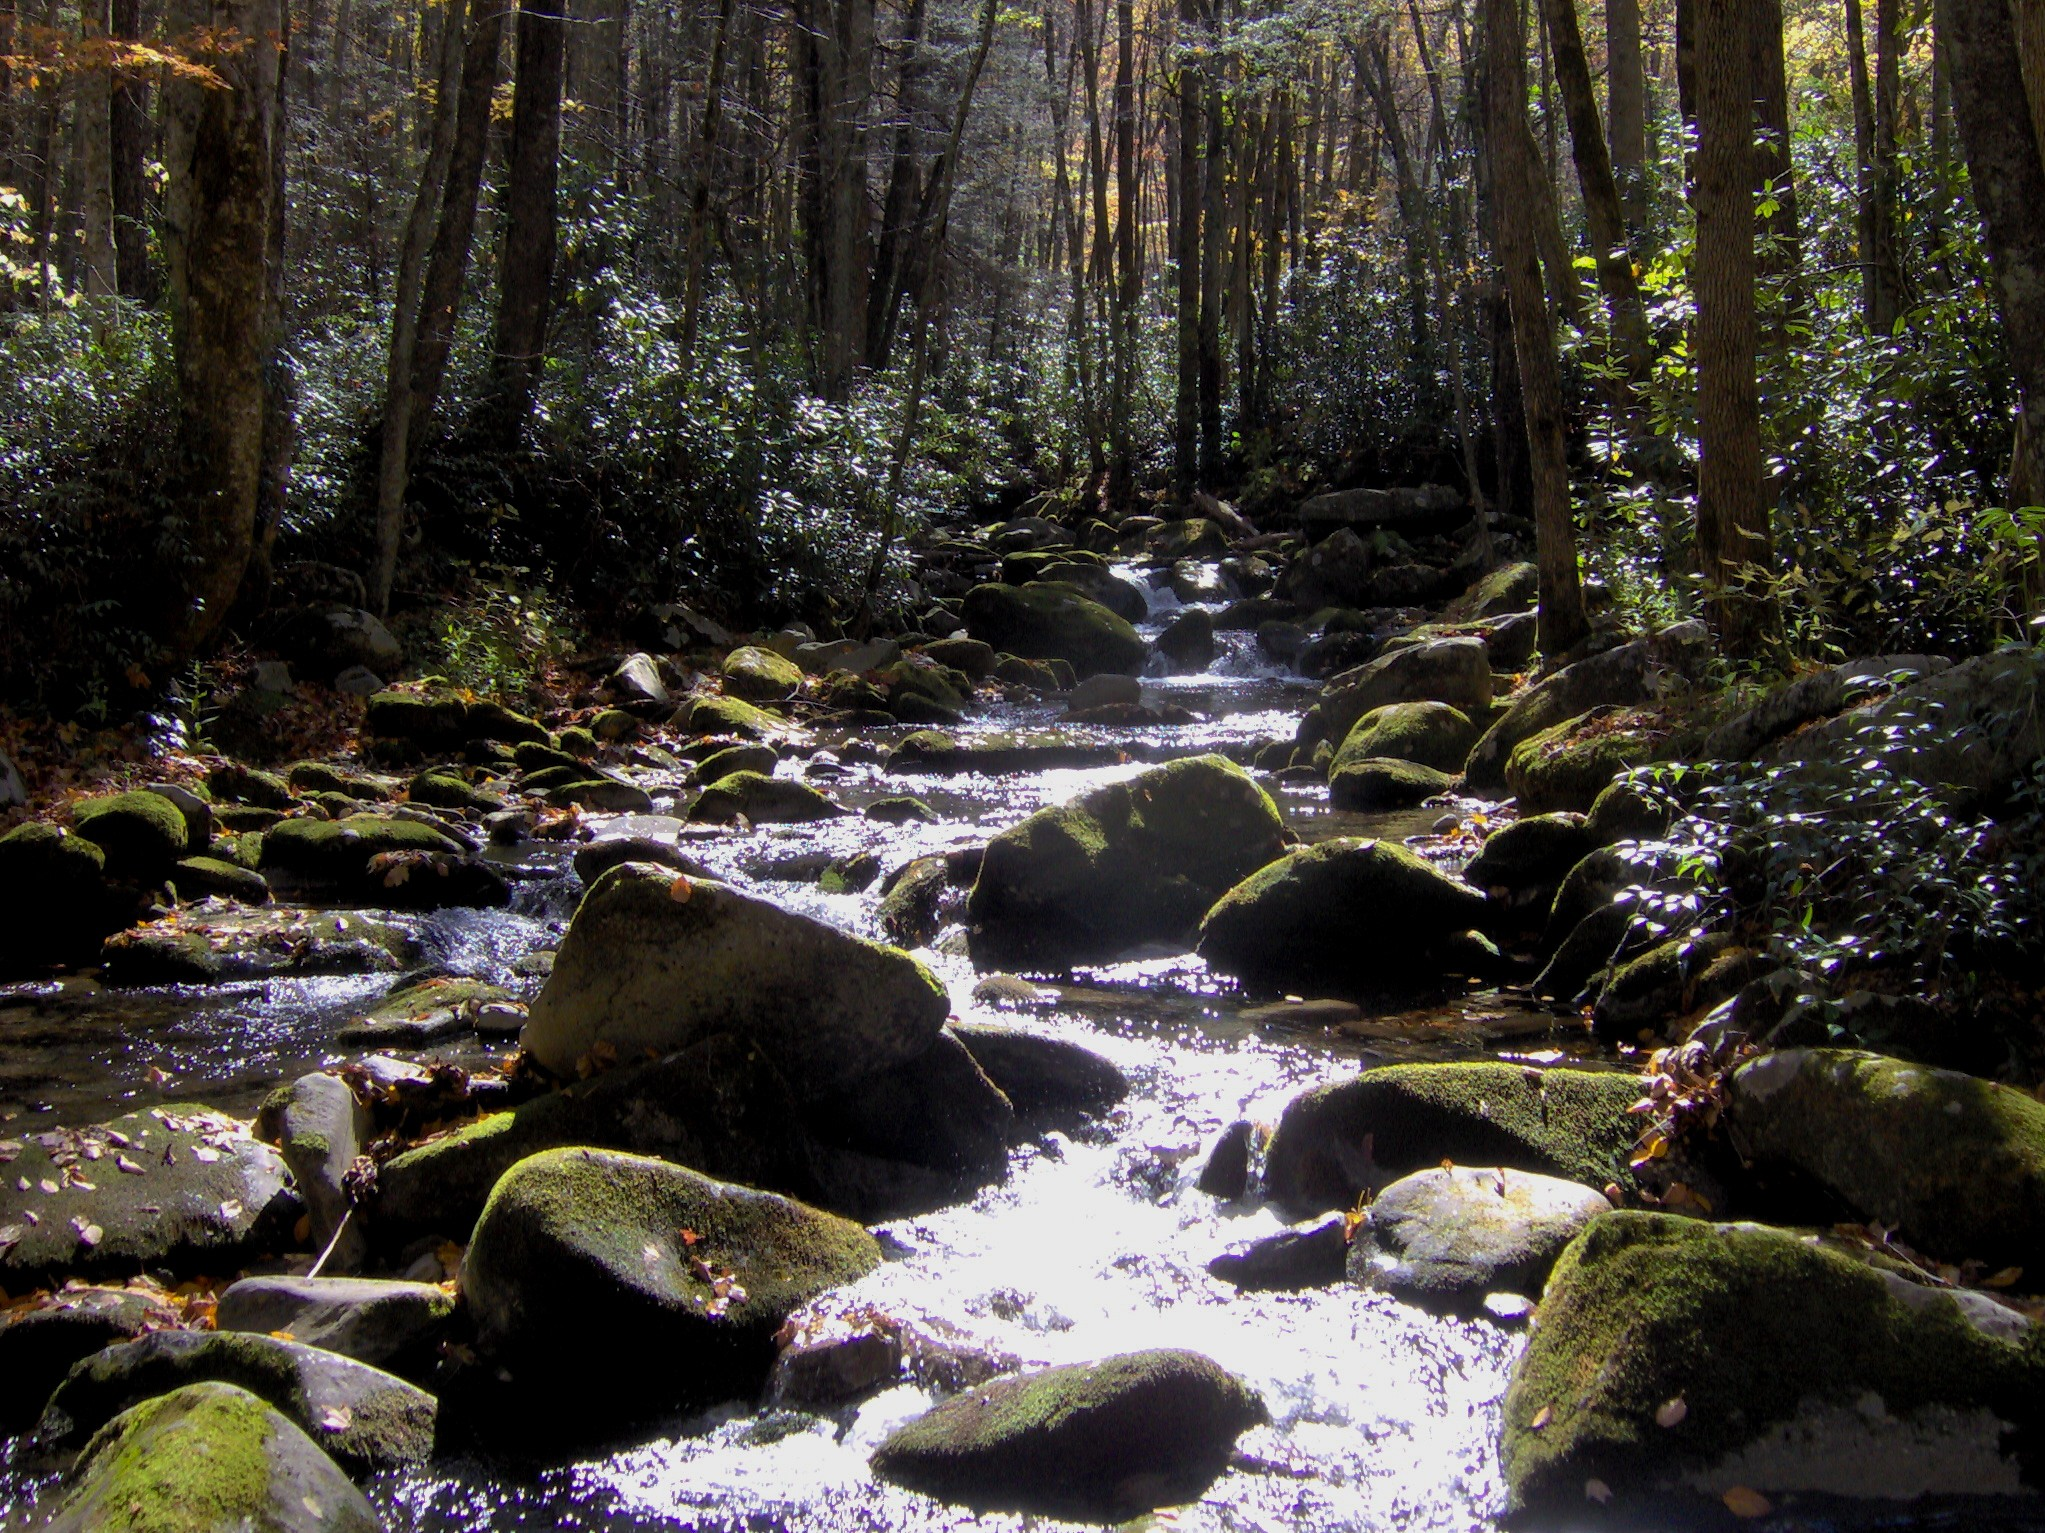 Sunlight sparks on the surface of a stream that races between boulders.